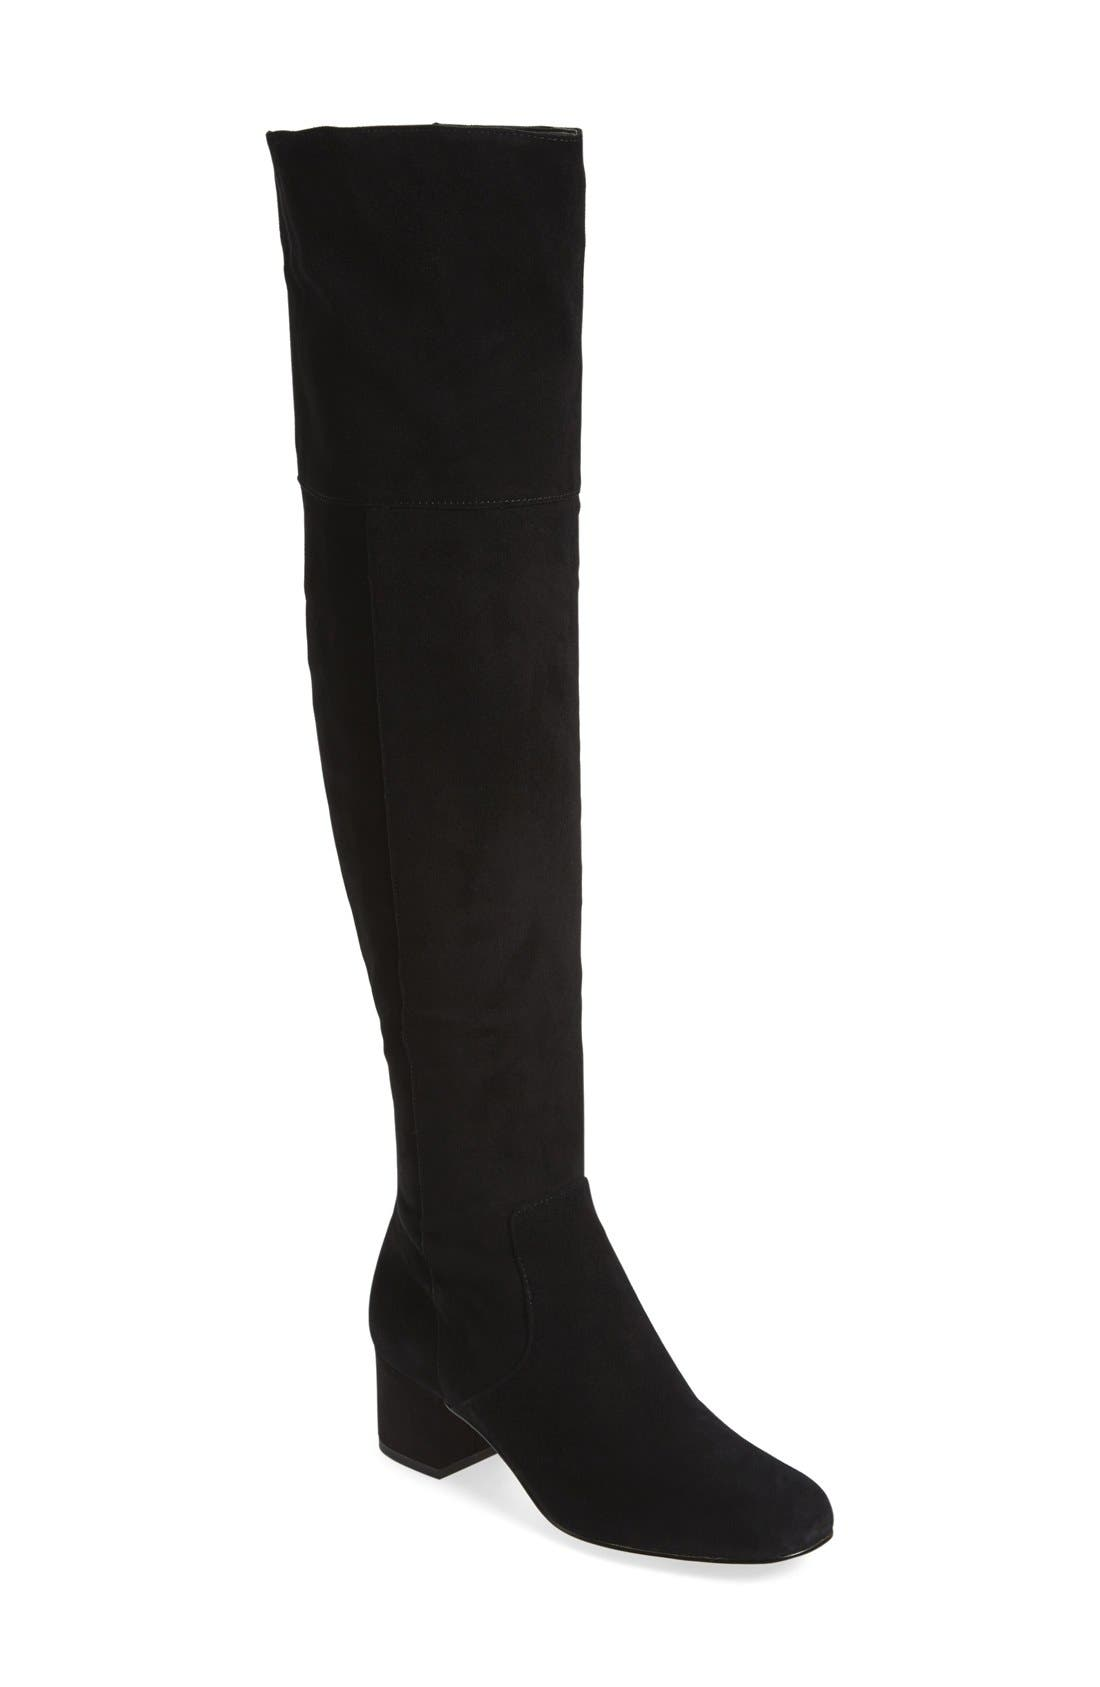 'Elina' Over the Knee Boot,                         Main,                         color, Black Suede Leather